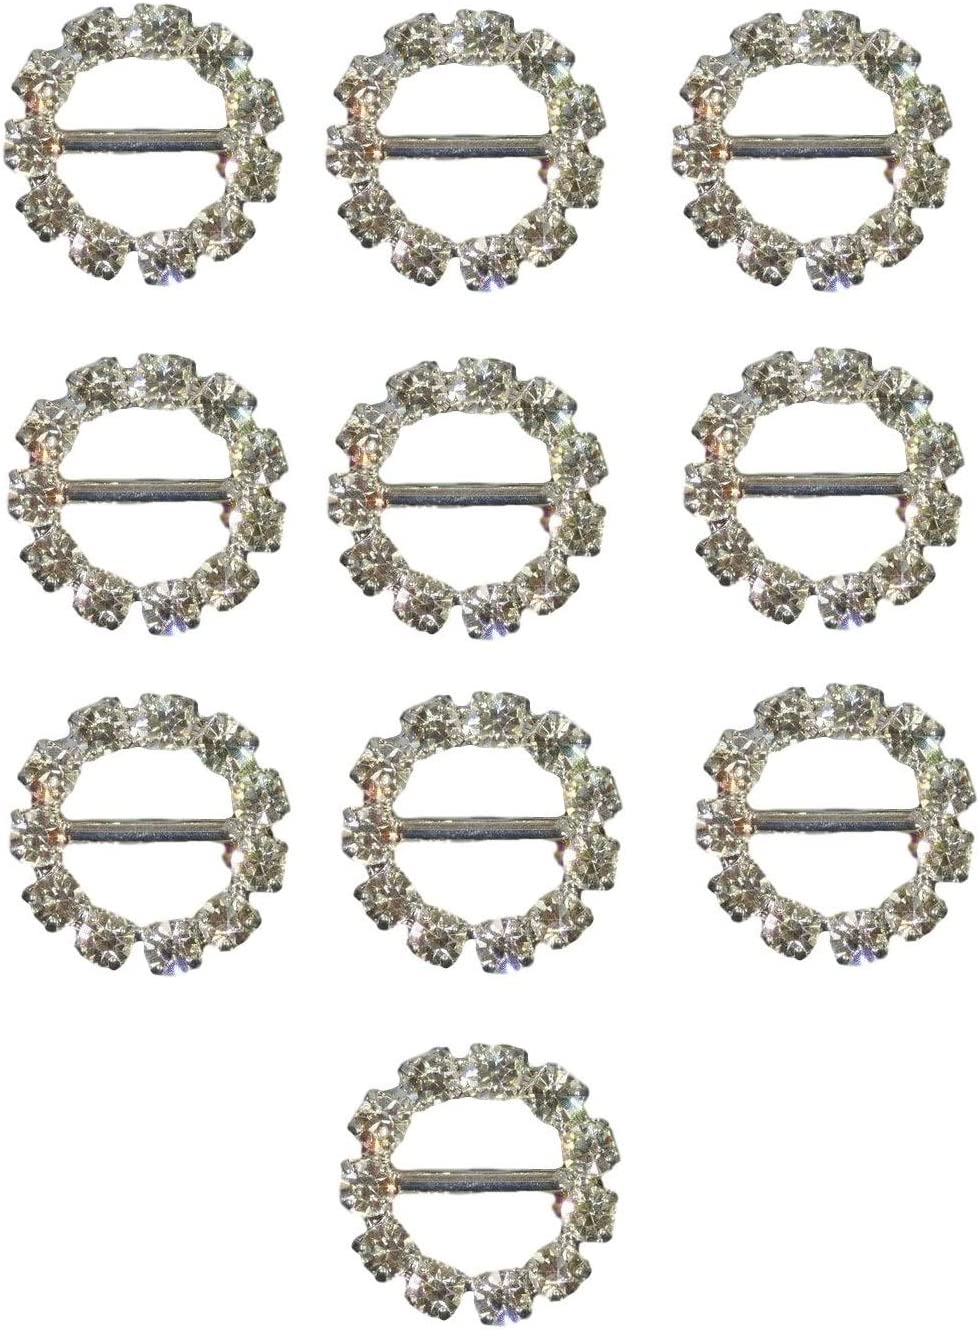 Diamante Rhinestone Buckles Ribbon Sliders Wedding Decor Bridal Embellishments